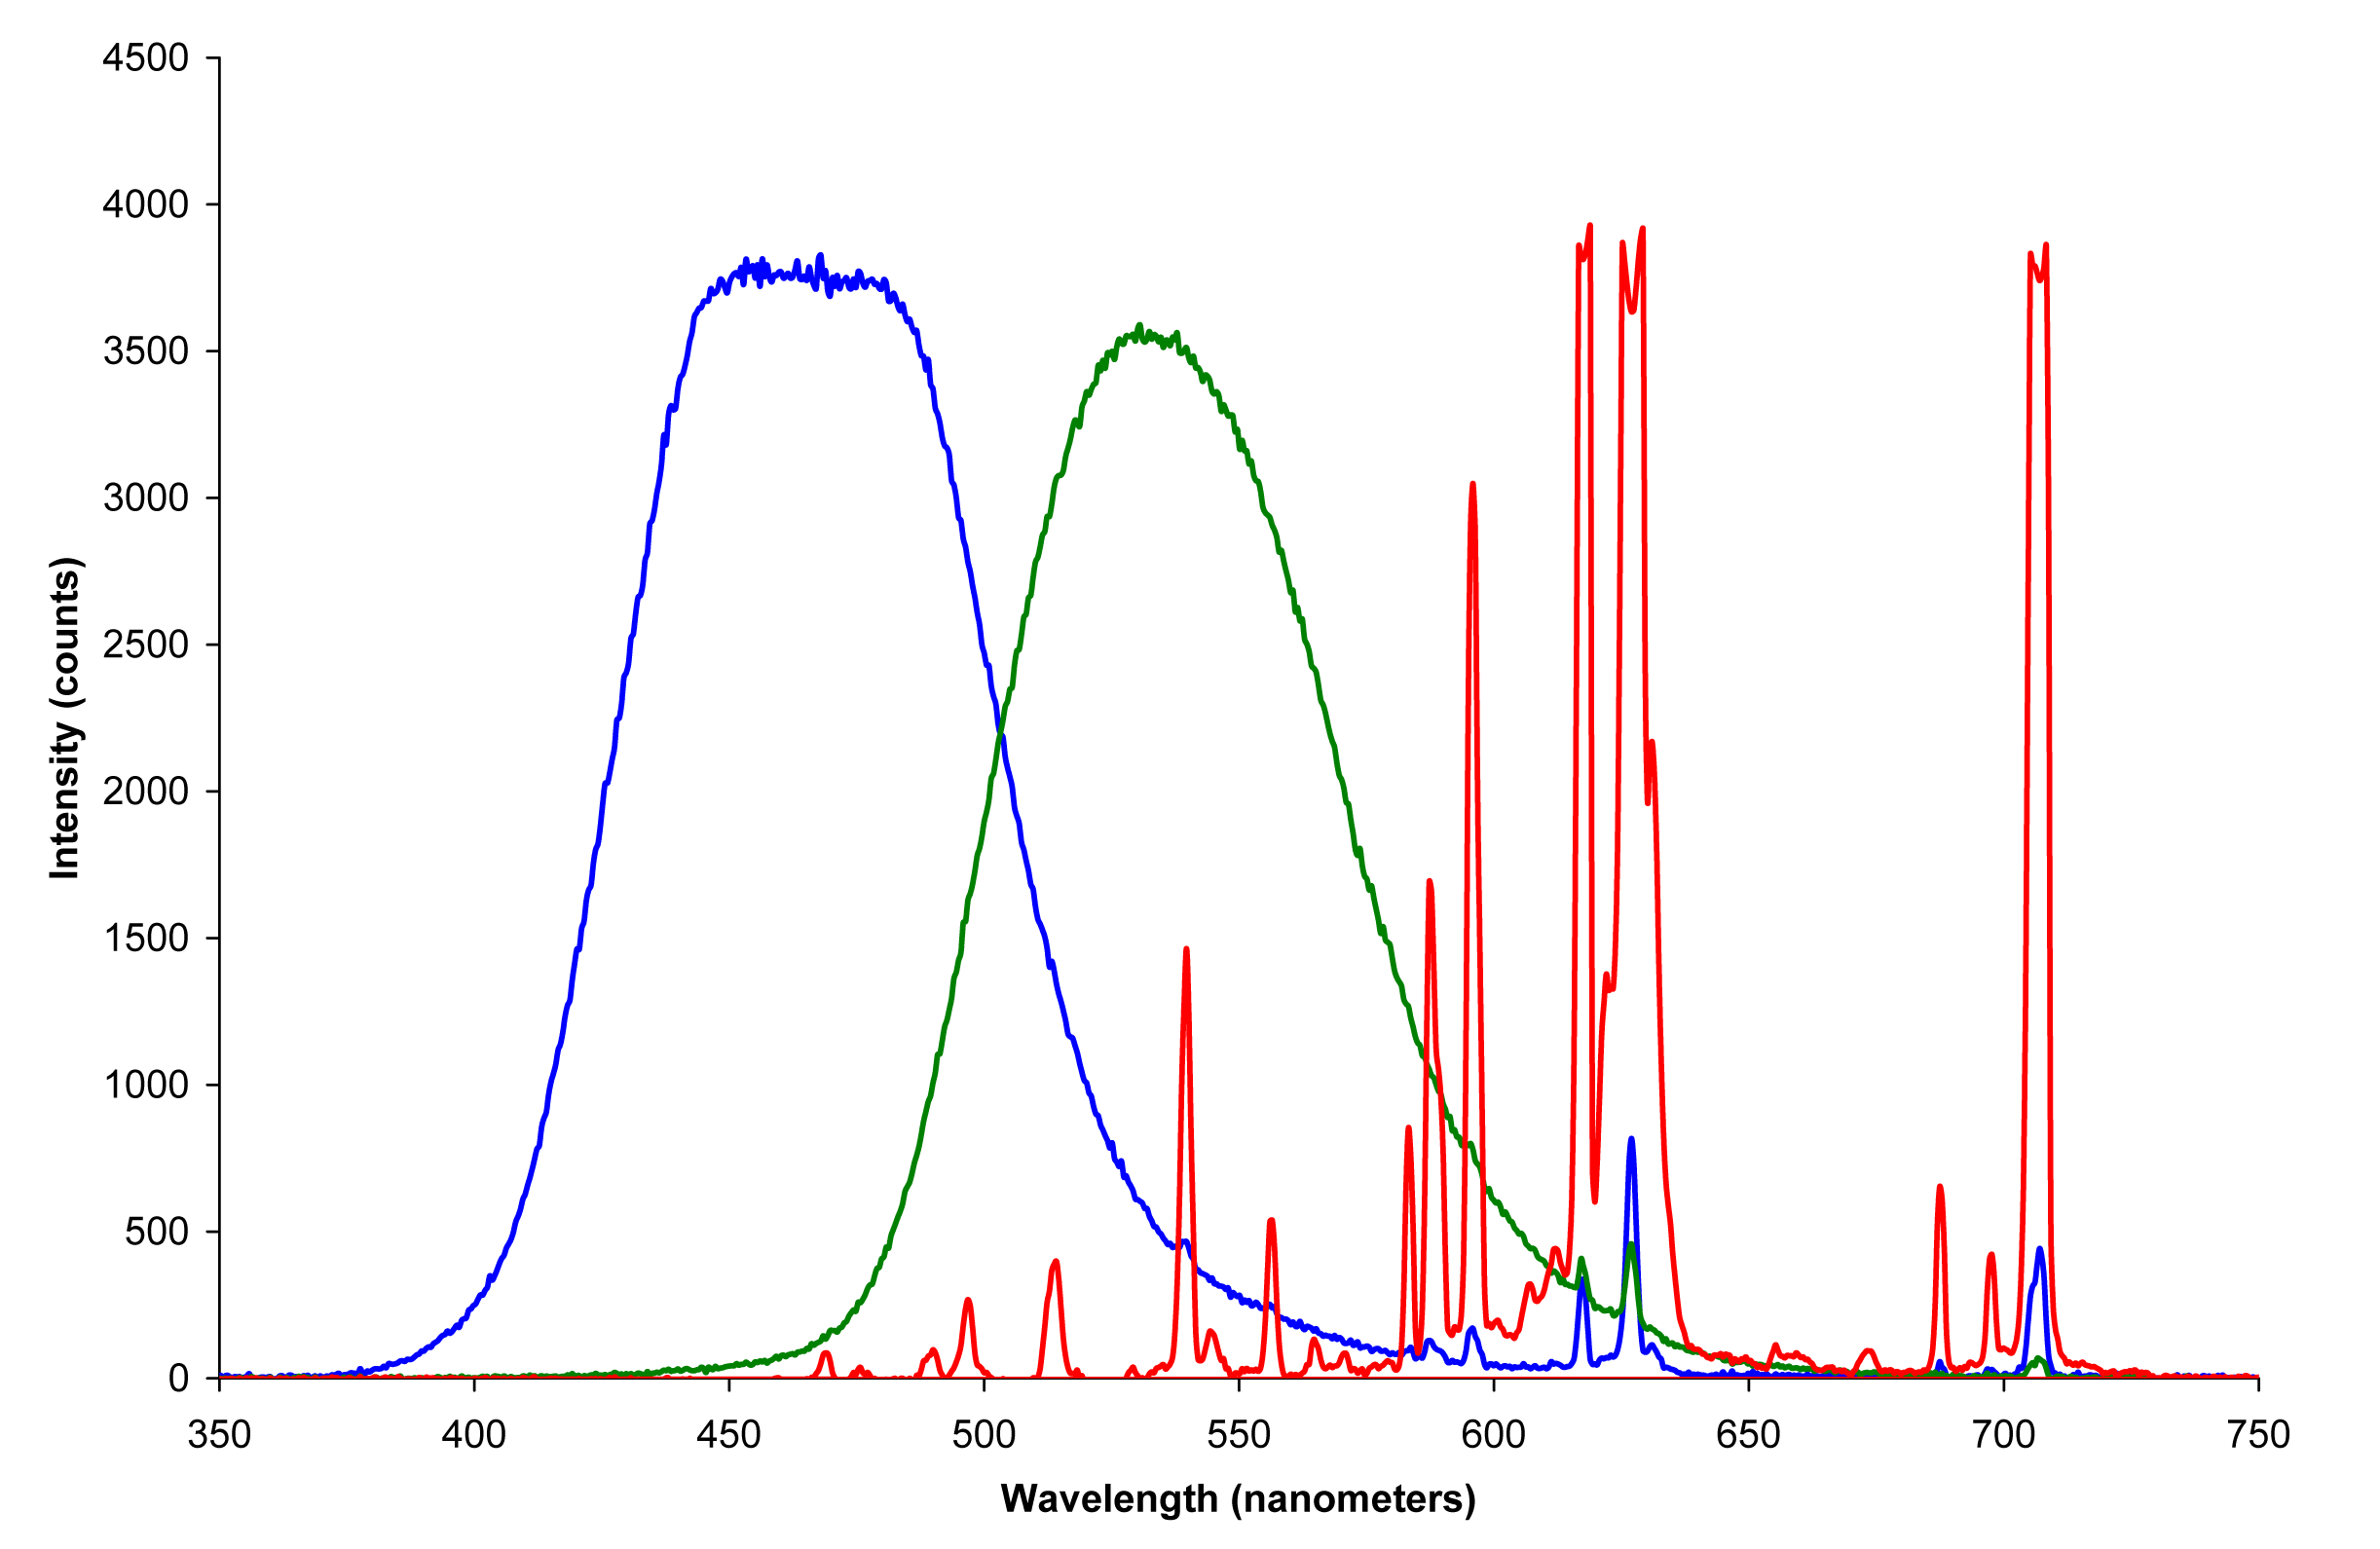 Spectra of constituent blue, green and red phosphors in a common CRT